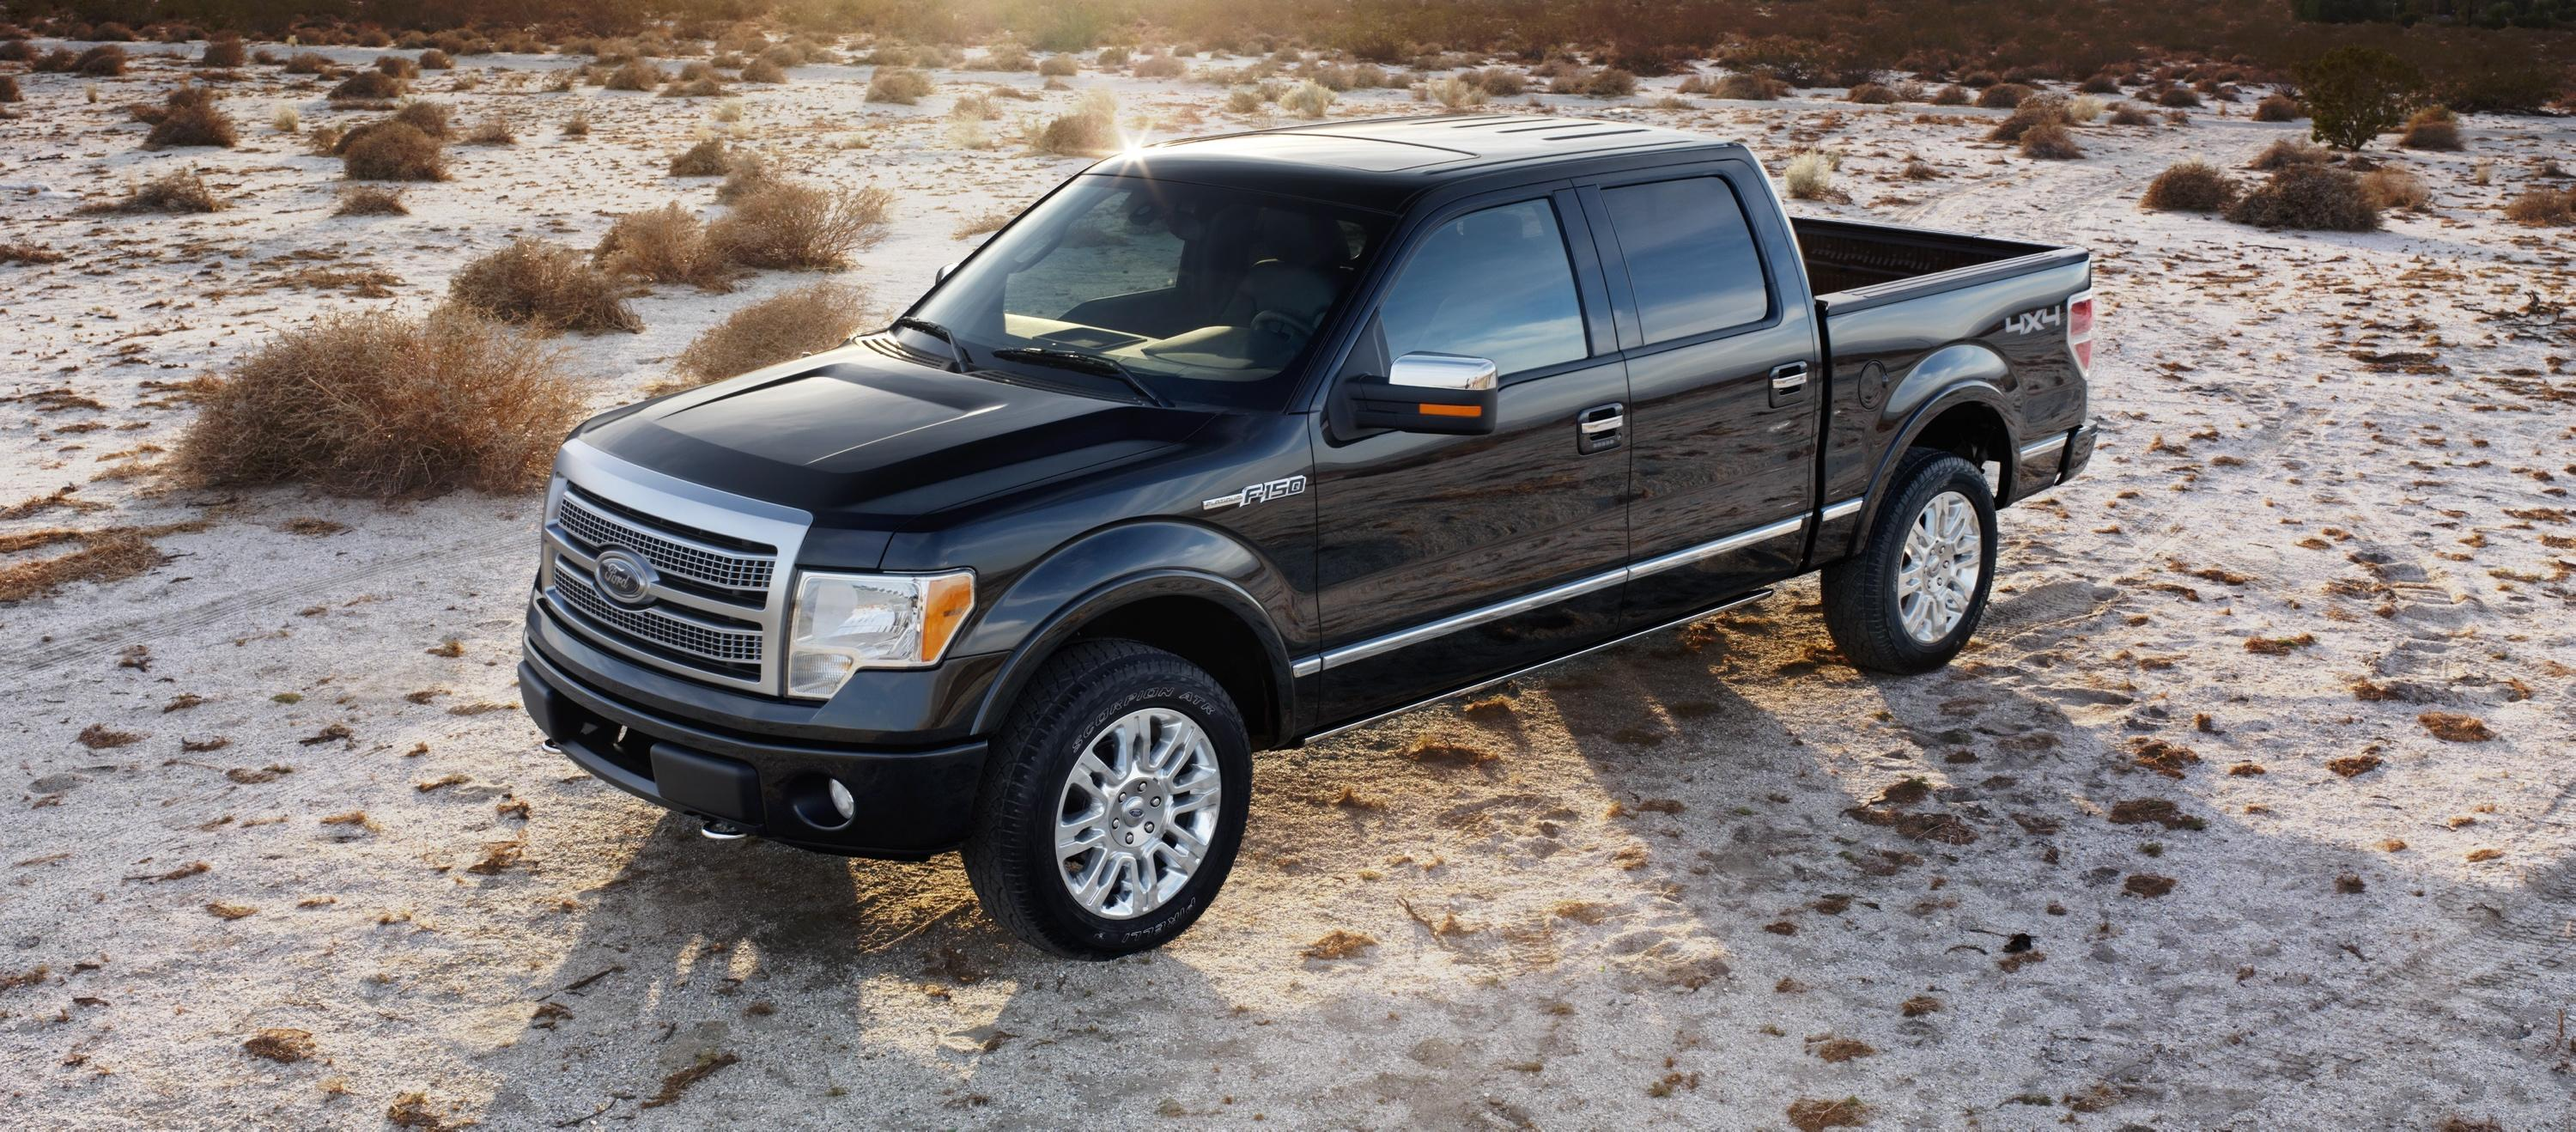 new 2009 ford f 150 earns top safety pick rating. Black Bedroom Furniture Sets. Home Design Ideas